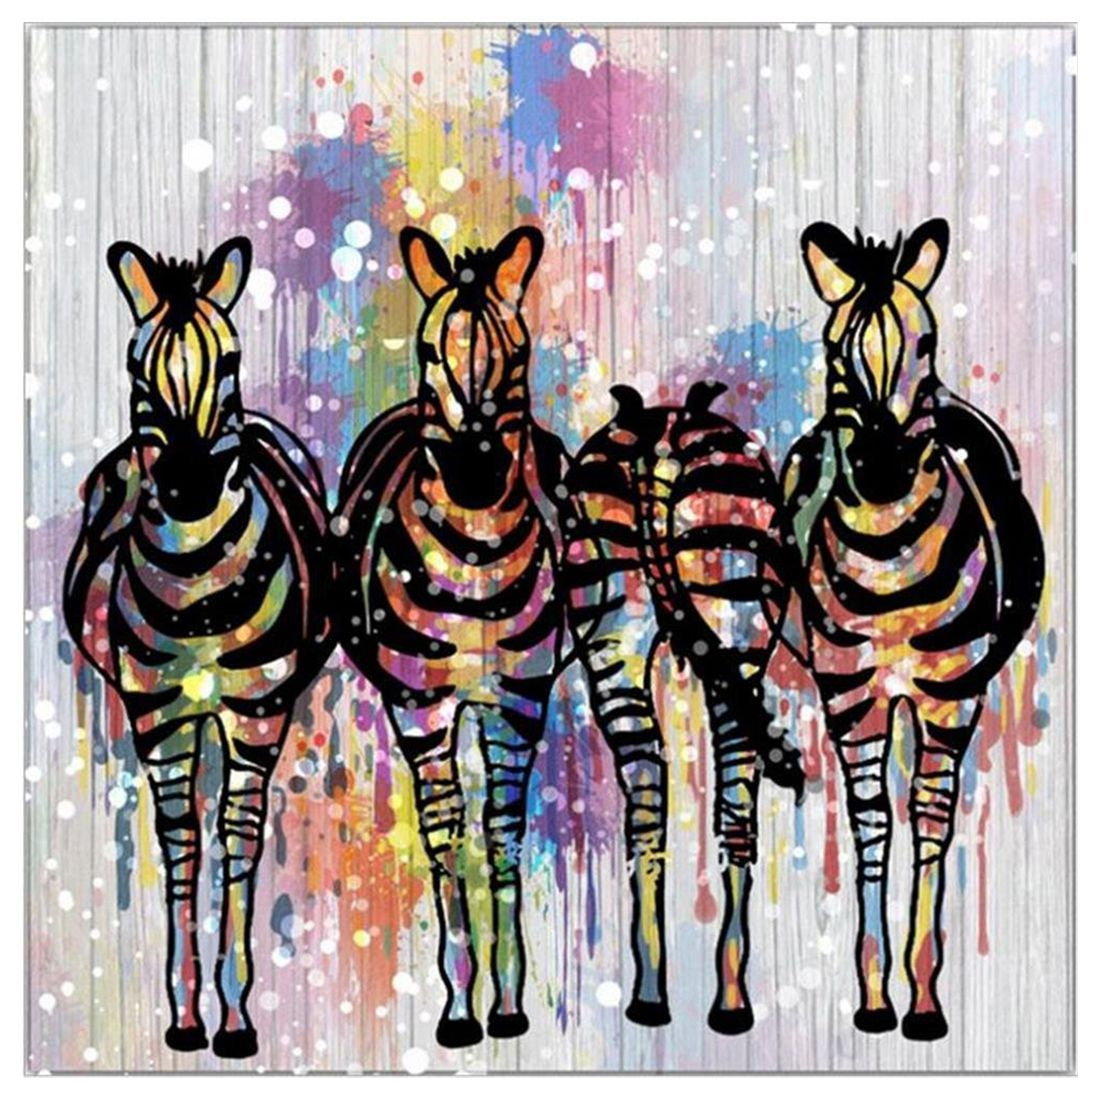 PPYY NEW -Four Only Zebra - Painting Animals Canvas Colorful Horse Decoration Abstract Art Home Decorations Wall Ready To Hang